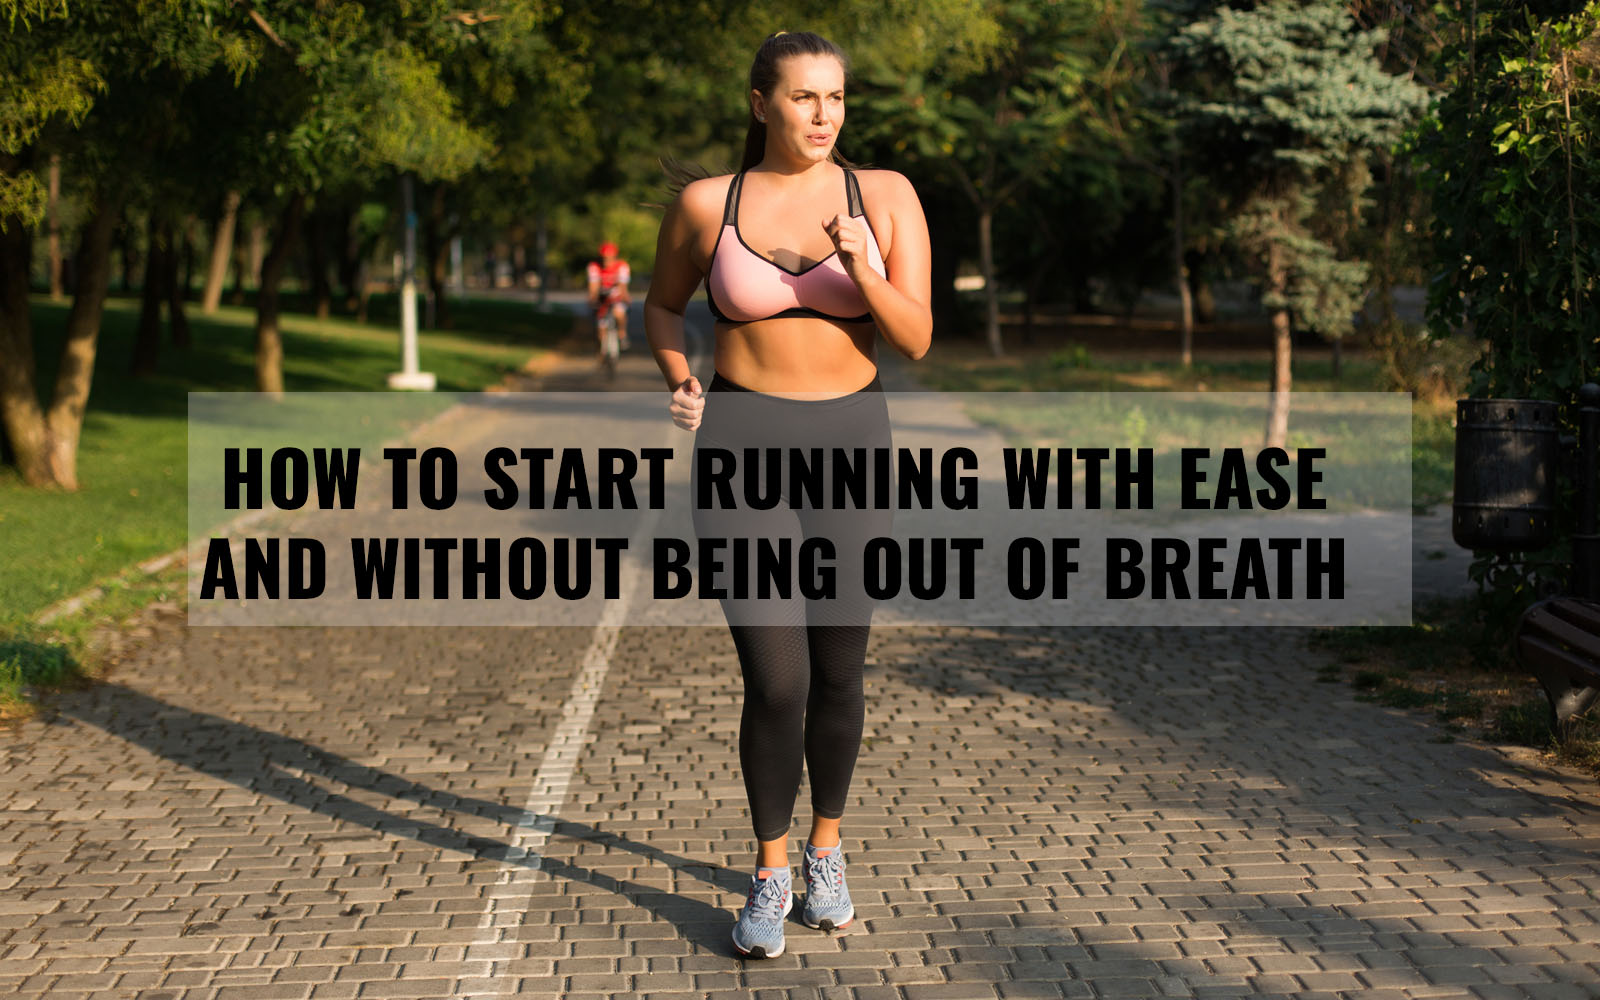 How to start running with ease and without being out of breath